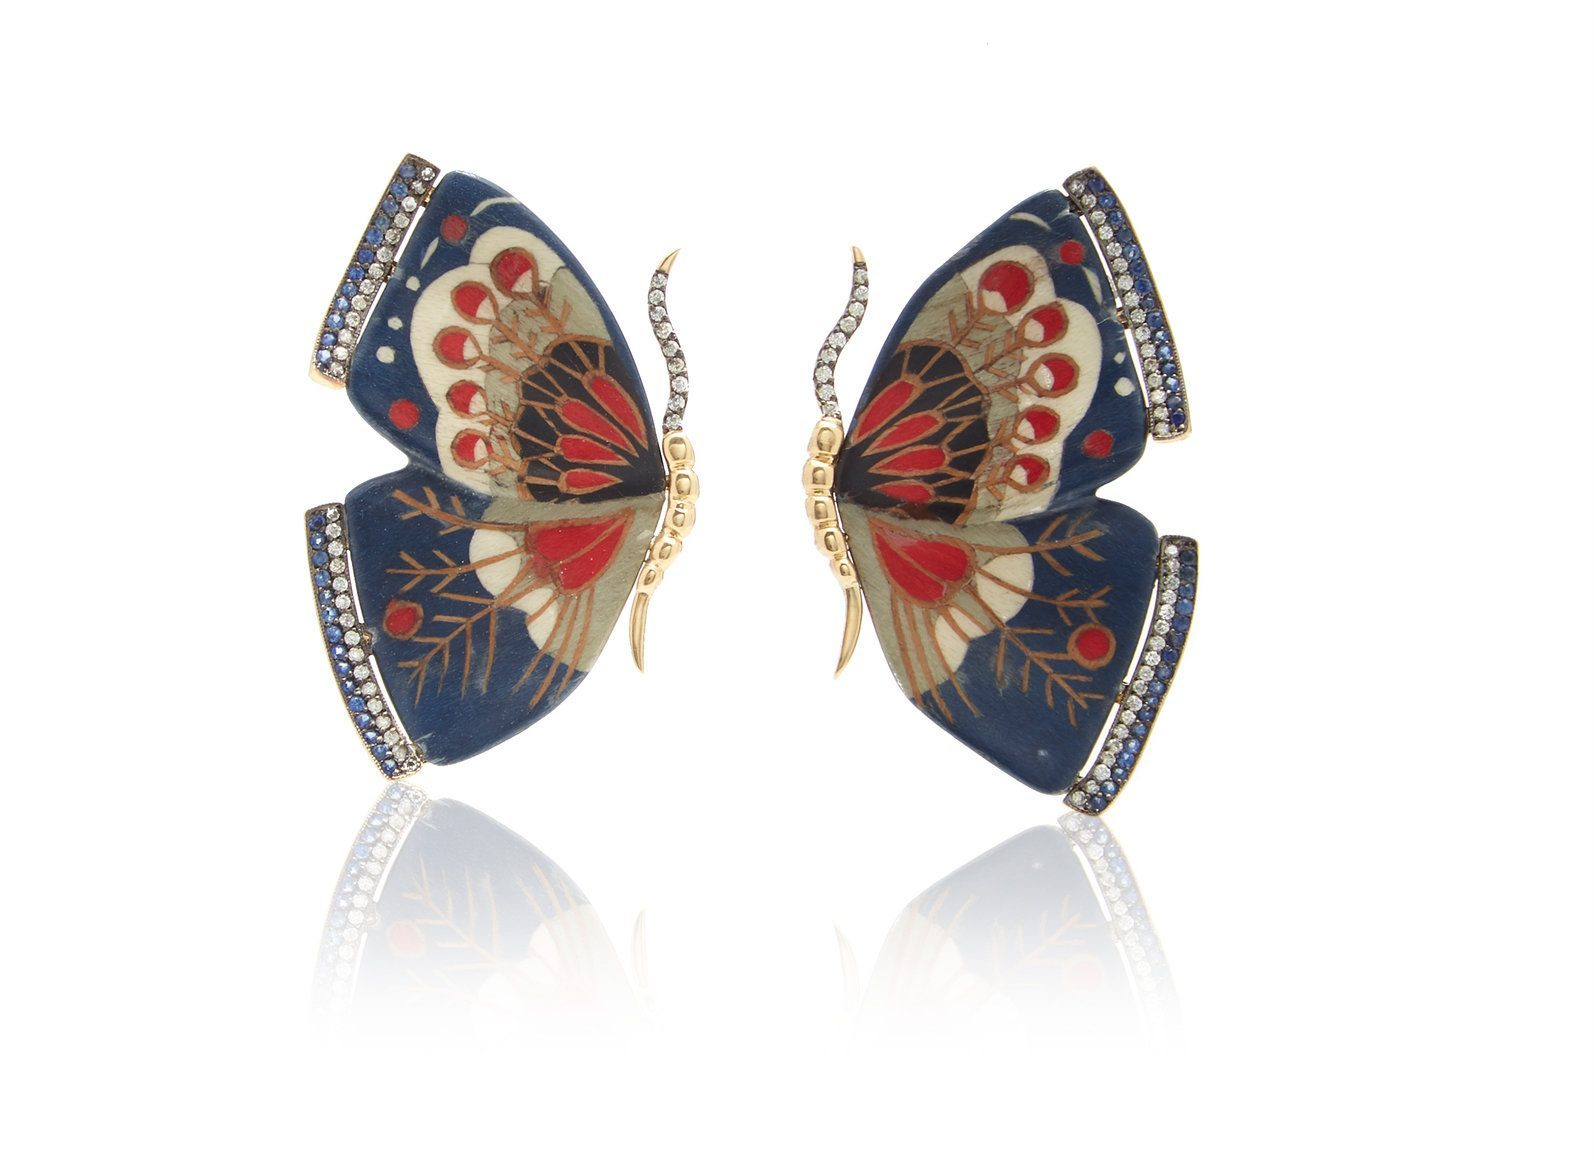 silivia furmanovich Sculptural Botanical Marquetry Blue Butterfly Earrings - Little Luxuries Gift Guide - Good Things in Small Packages